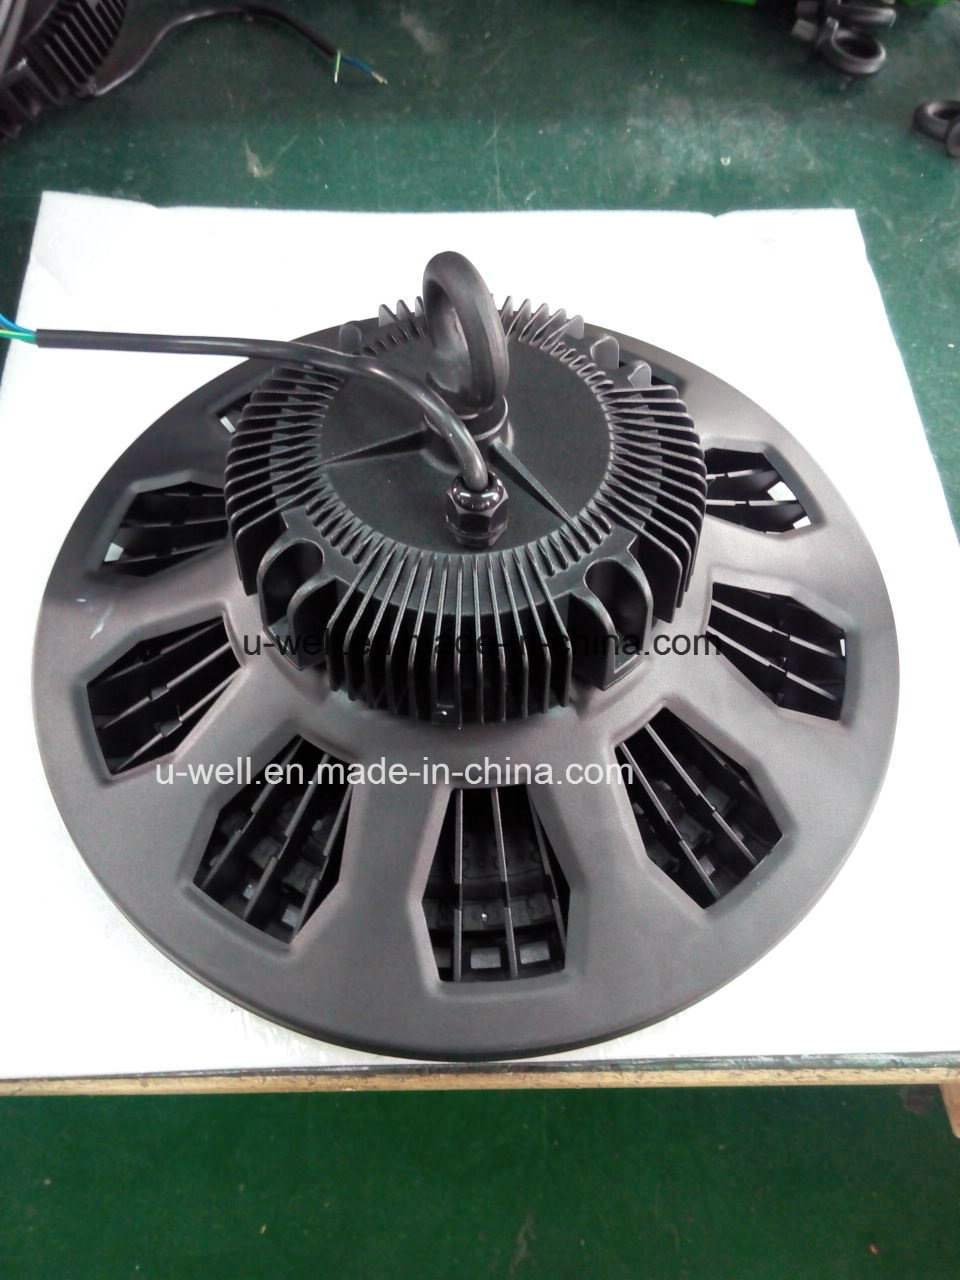 LED Industrial Light From China Manufacture